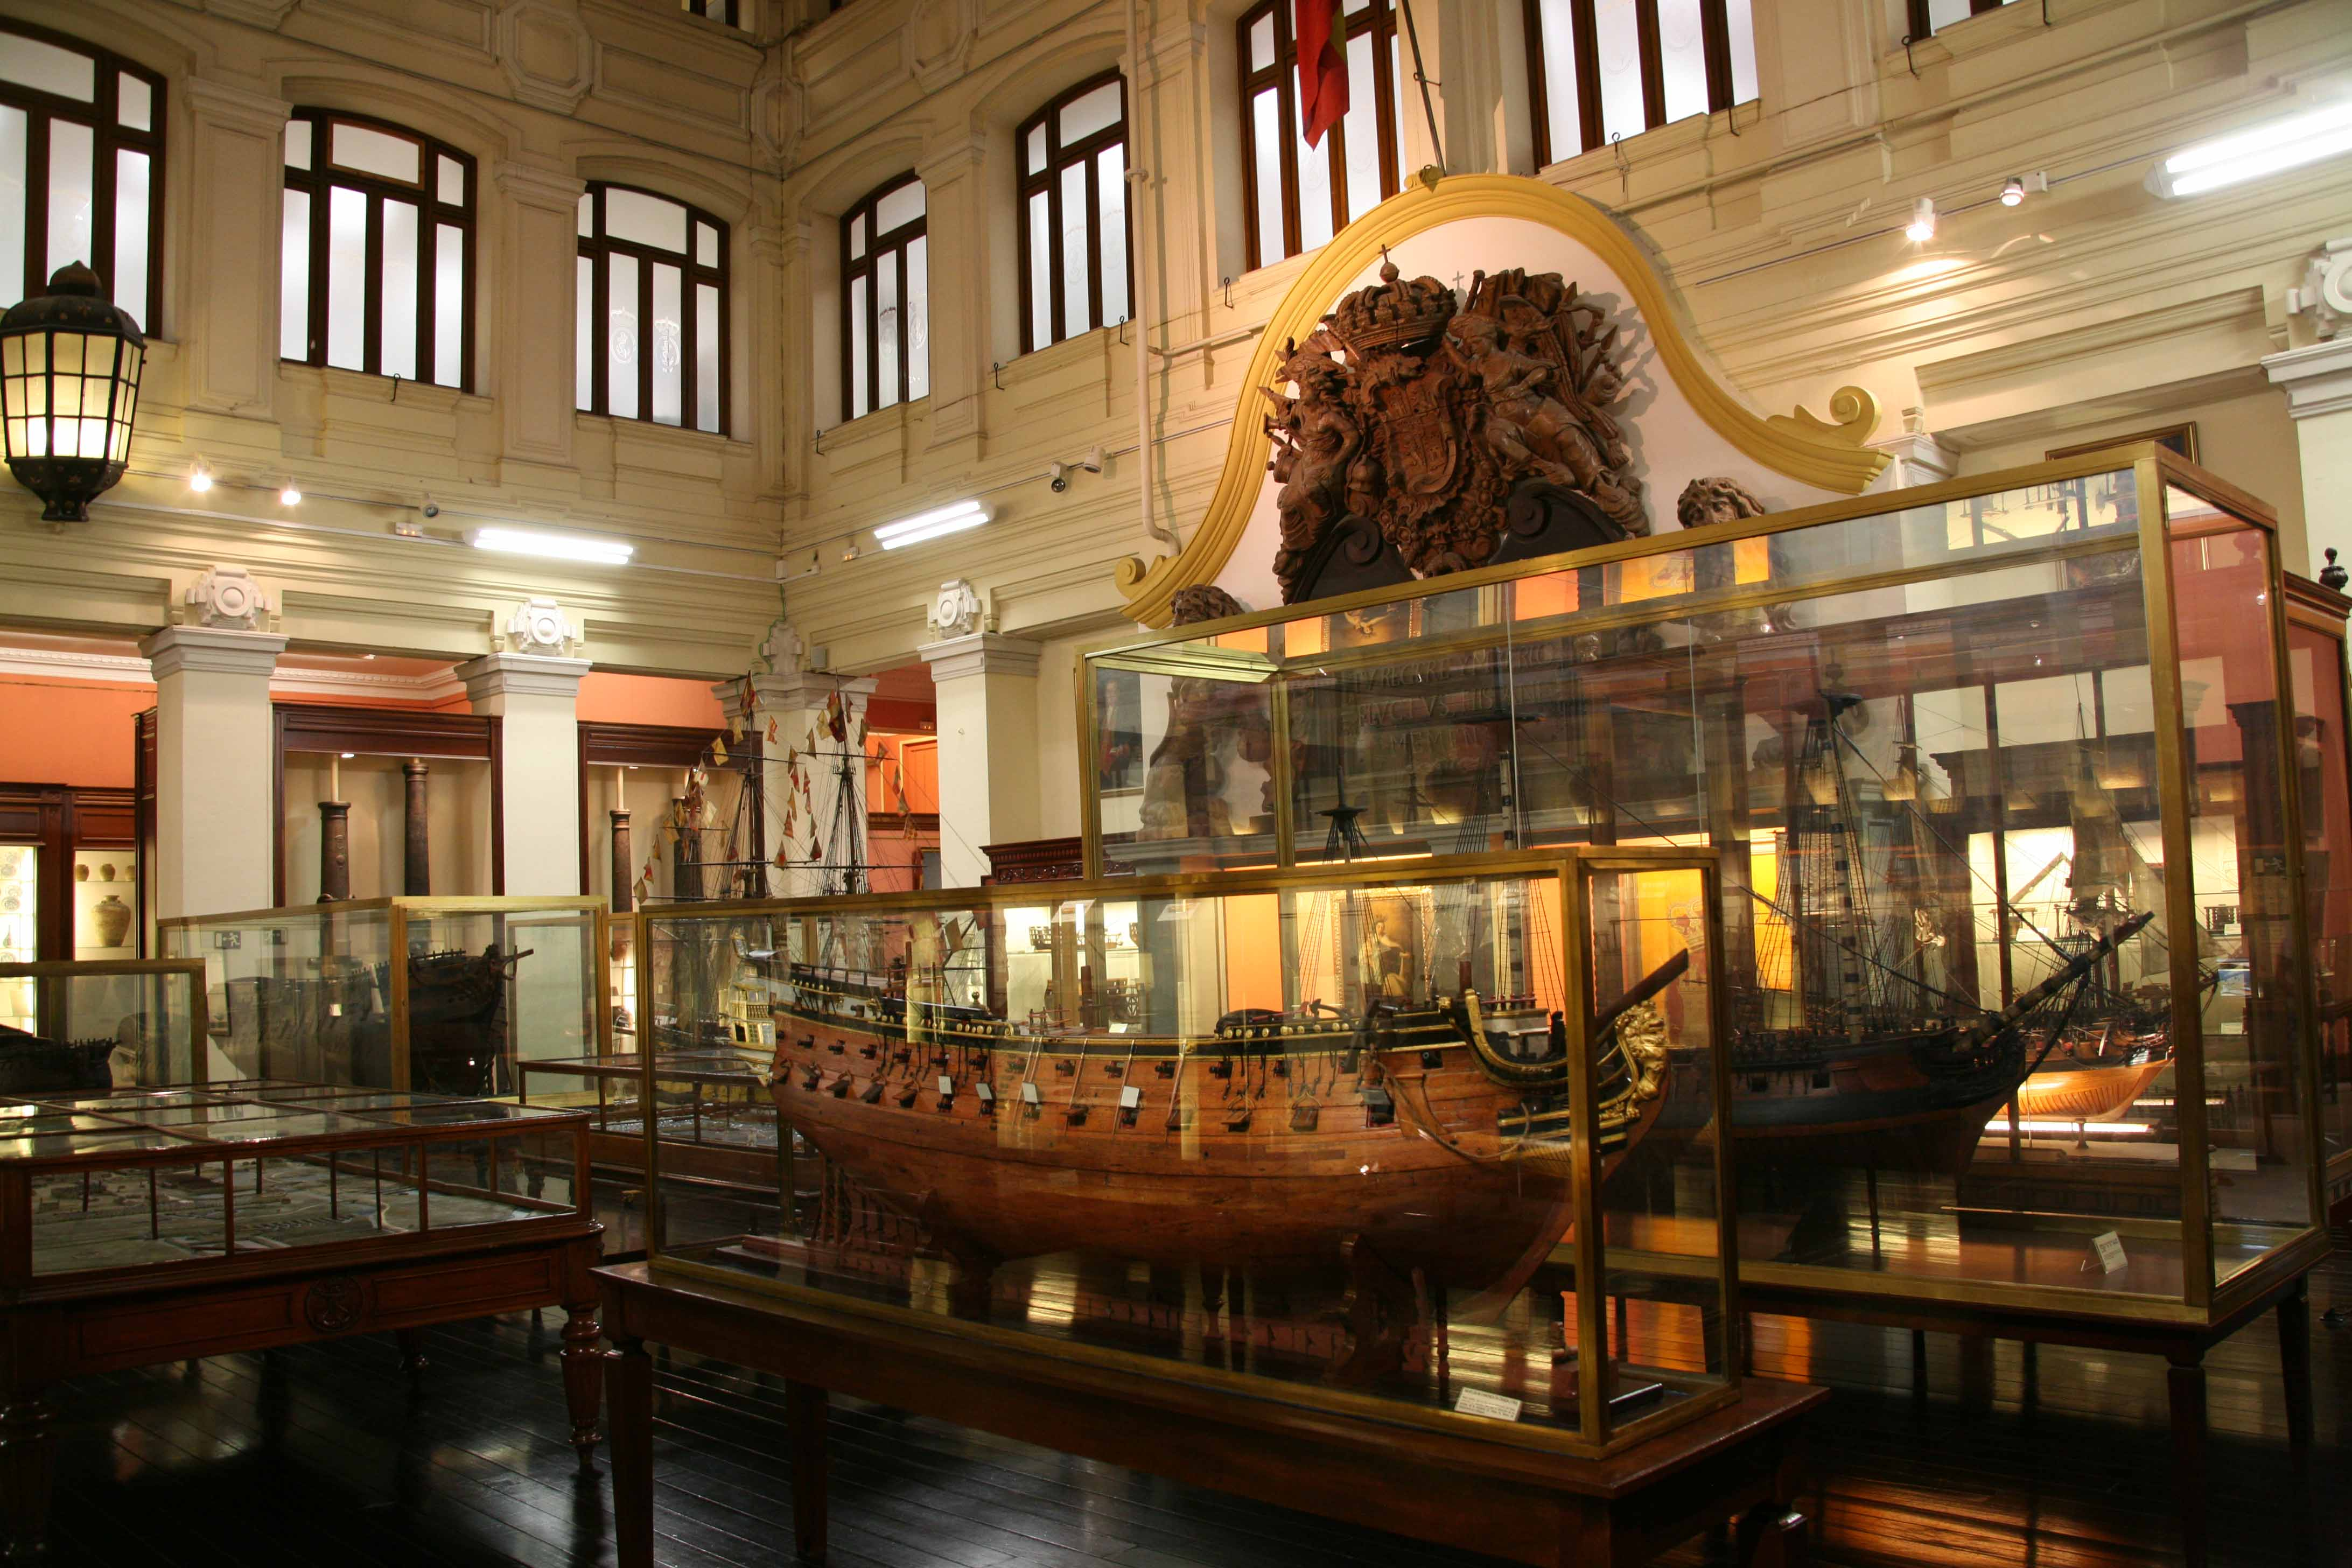 Museo Naval, Madrid, the Spanish naval museum